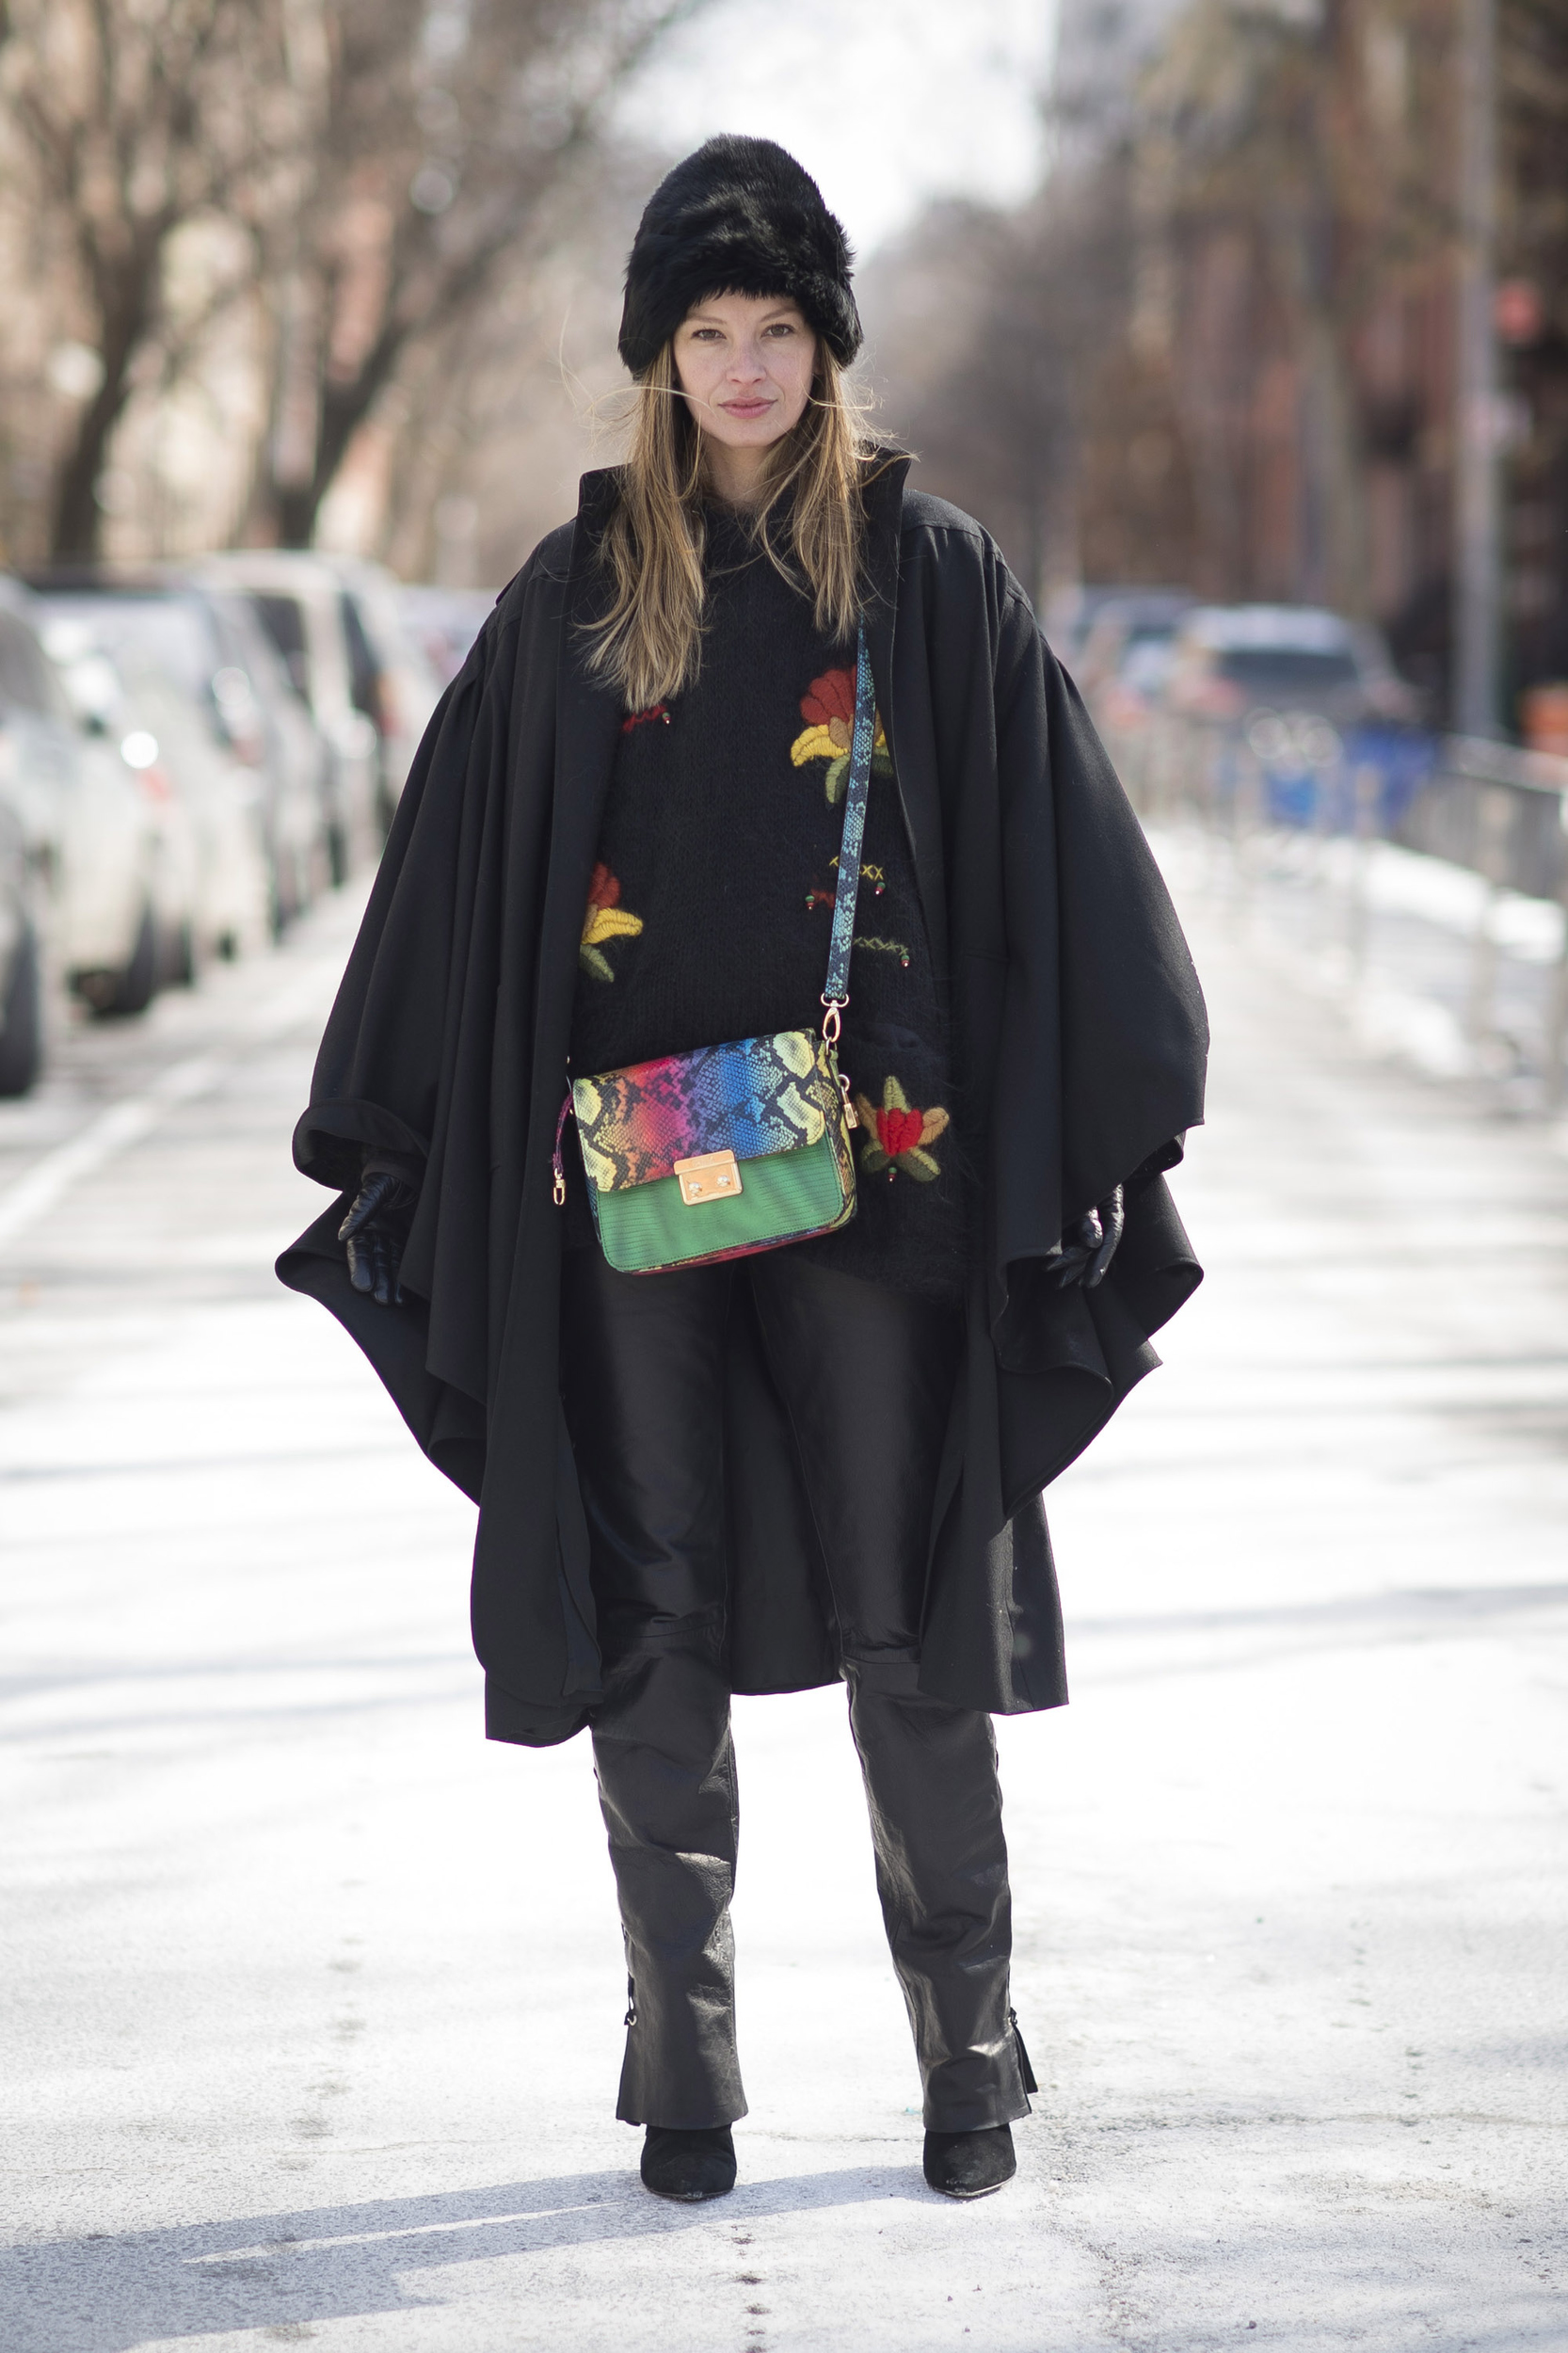 New york fashion week autumn winter 2015 street style Street style ny fashion week fall 2015